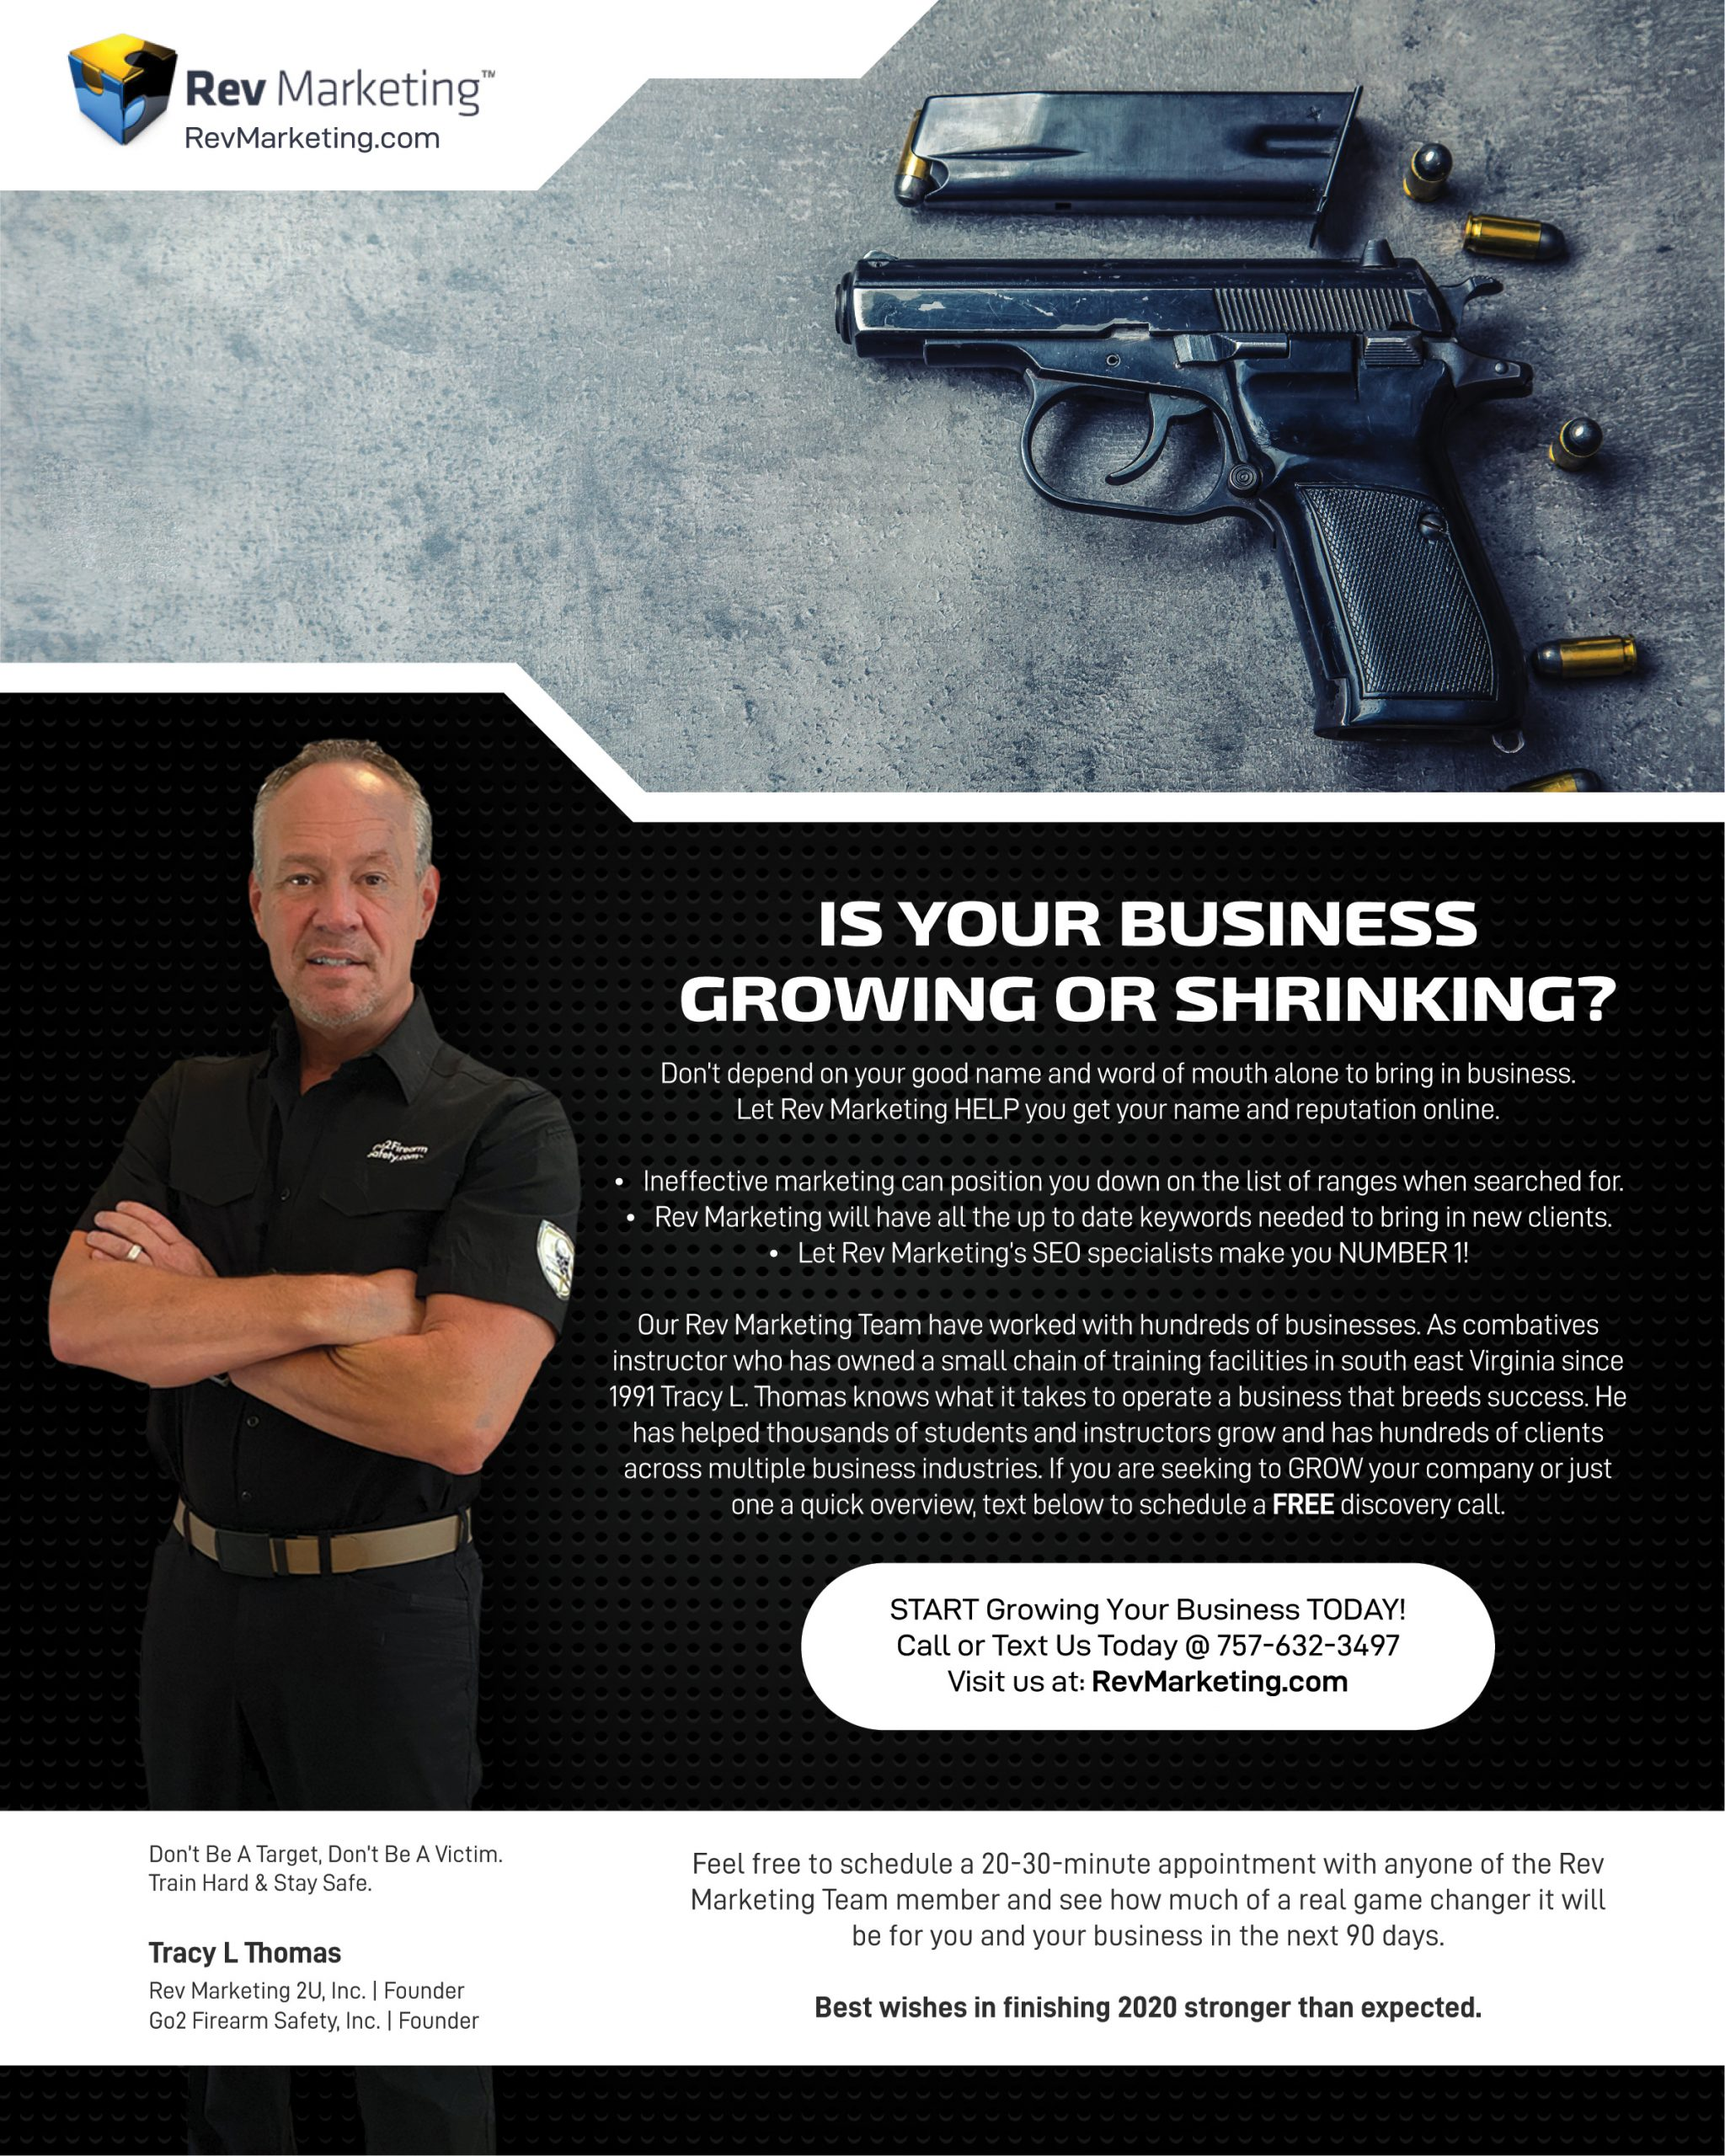 The Rev Marketing Team builds long lasting relationships with the firearms industry while developing a marketing plan and strategies to enhance growth online and in communities around servicing the firearms industry.